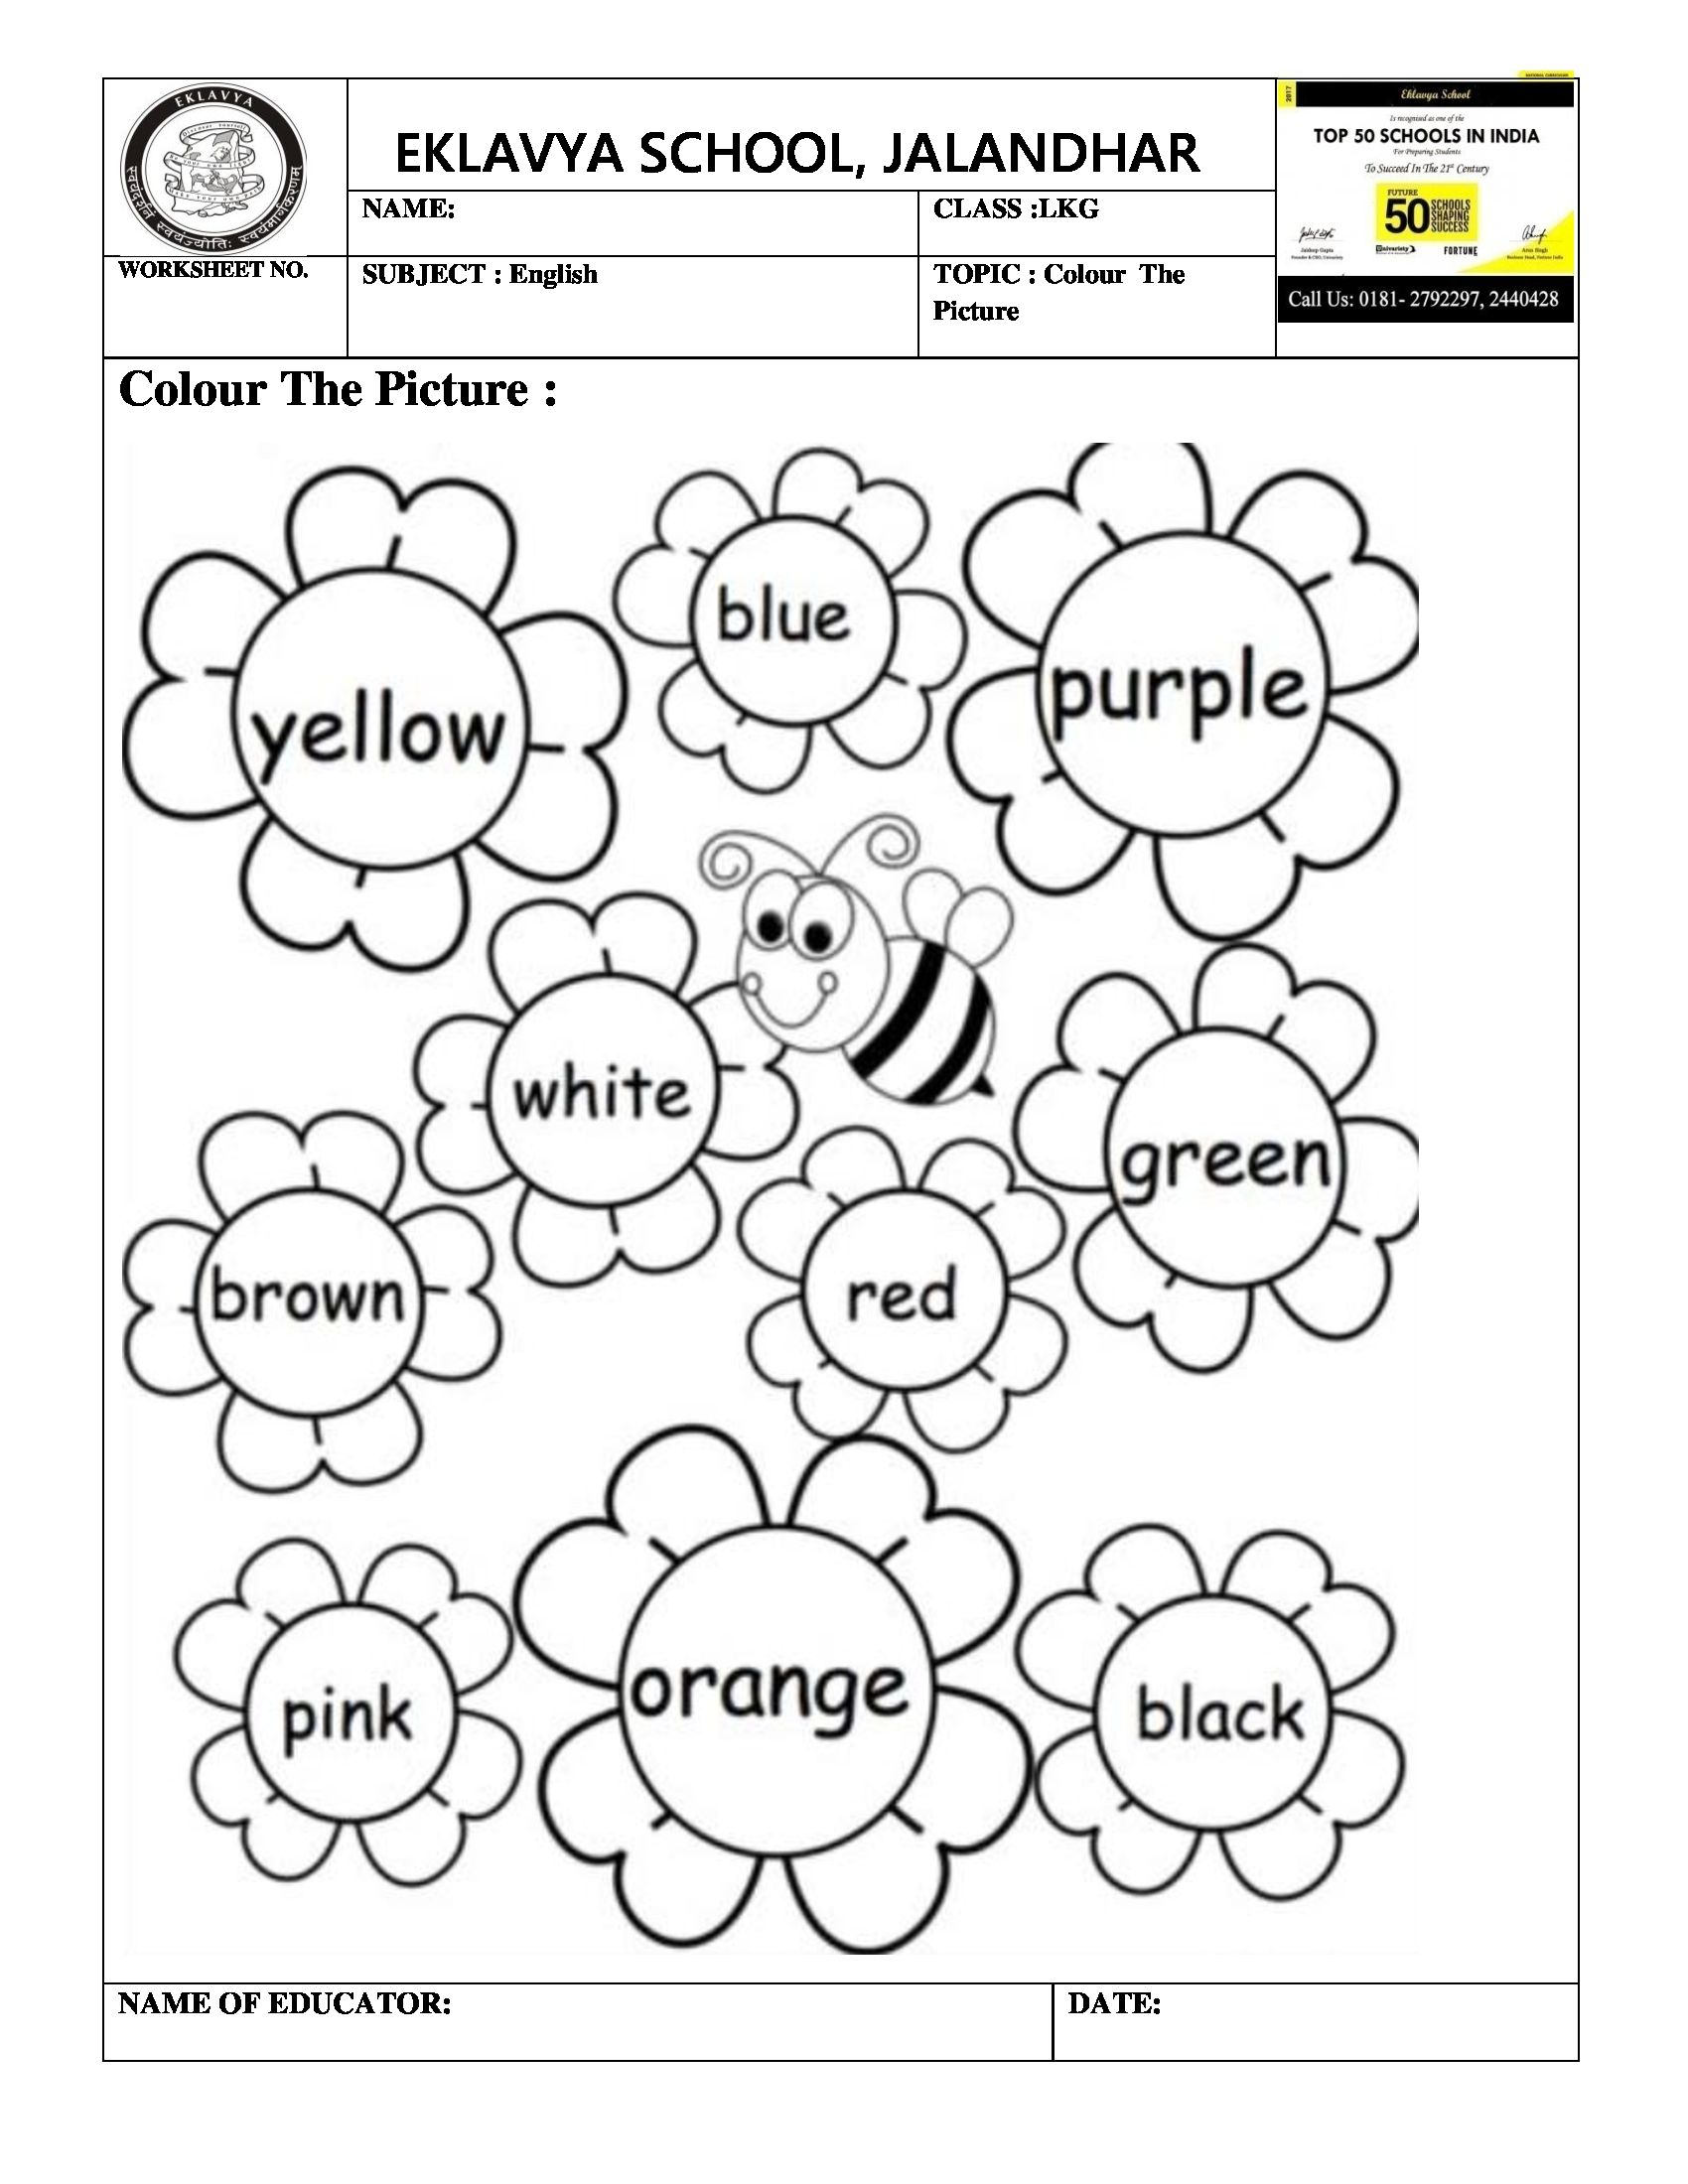 Colour The Picture Worksheet With Images